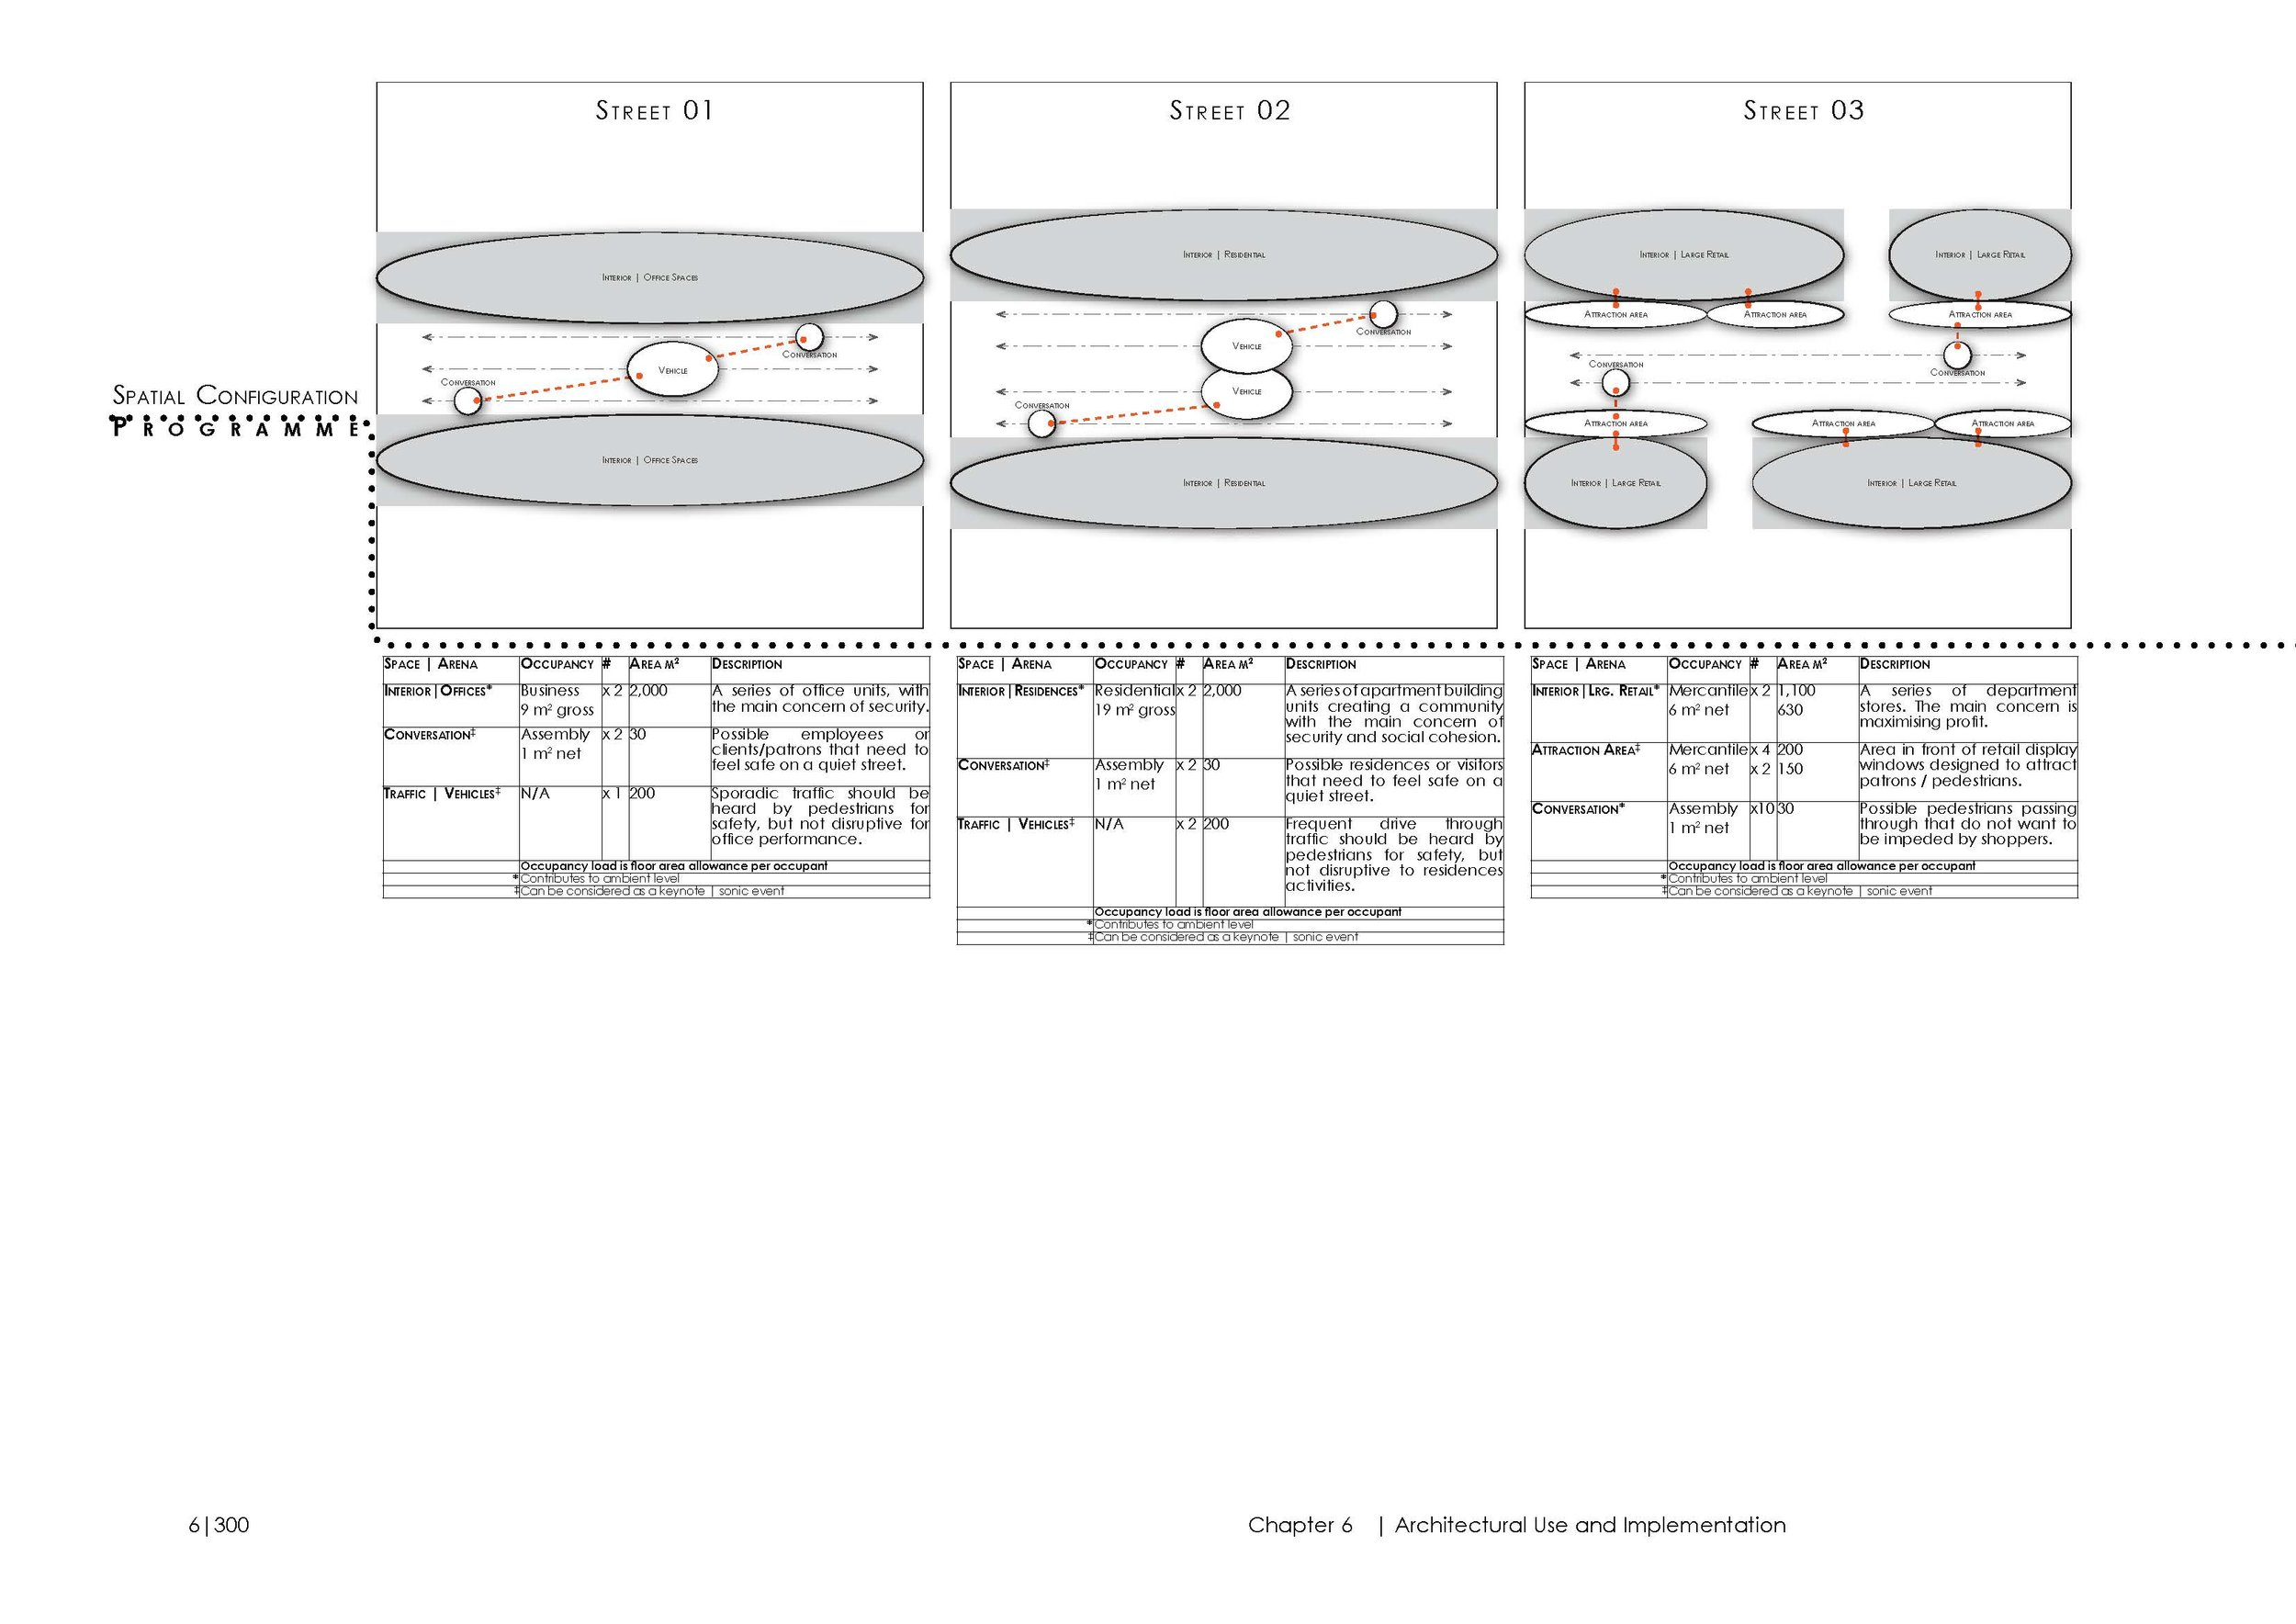 16.03.03_Thesis_01_Interactive_Page_336.jpg